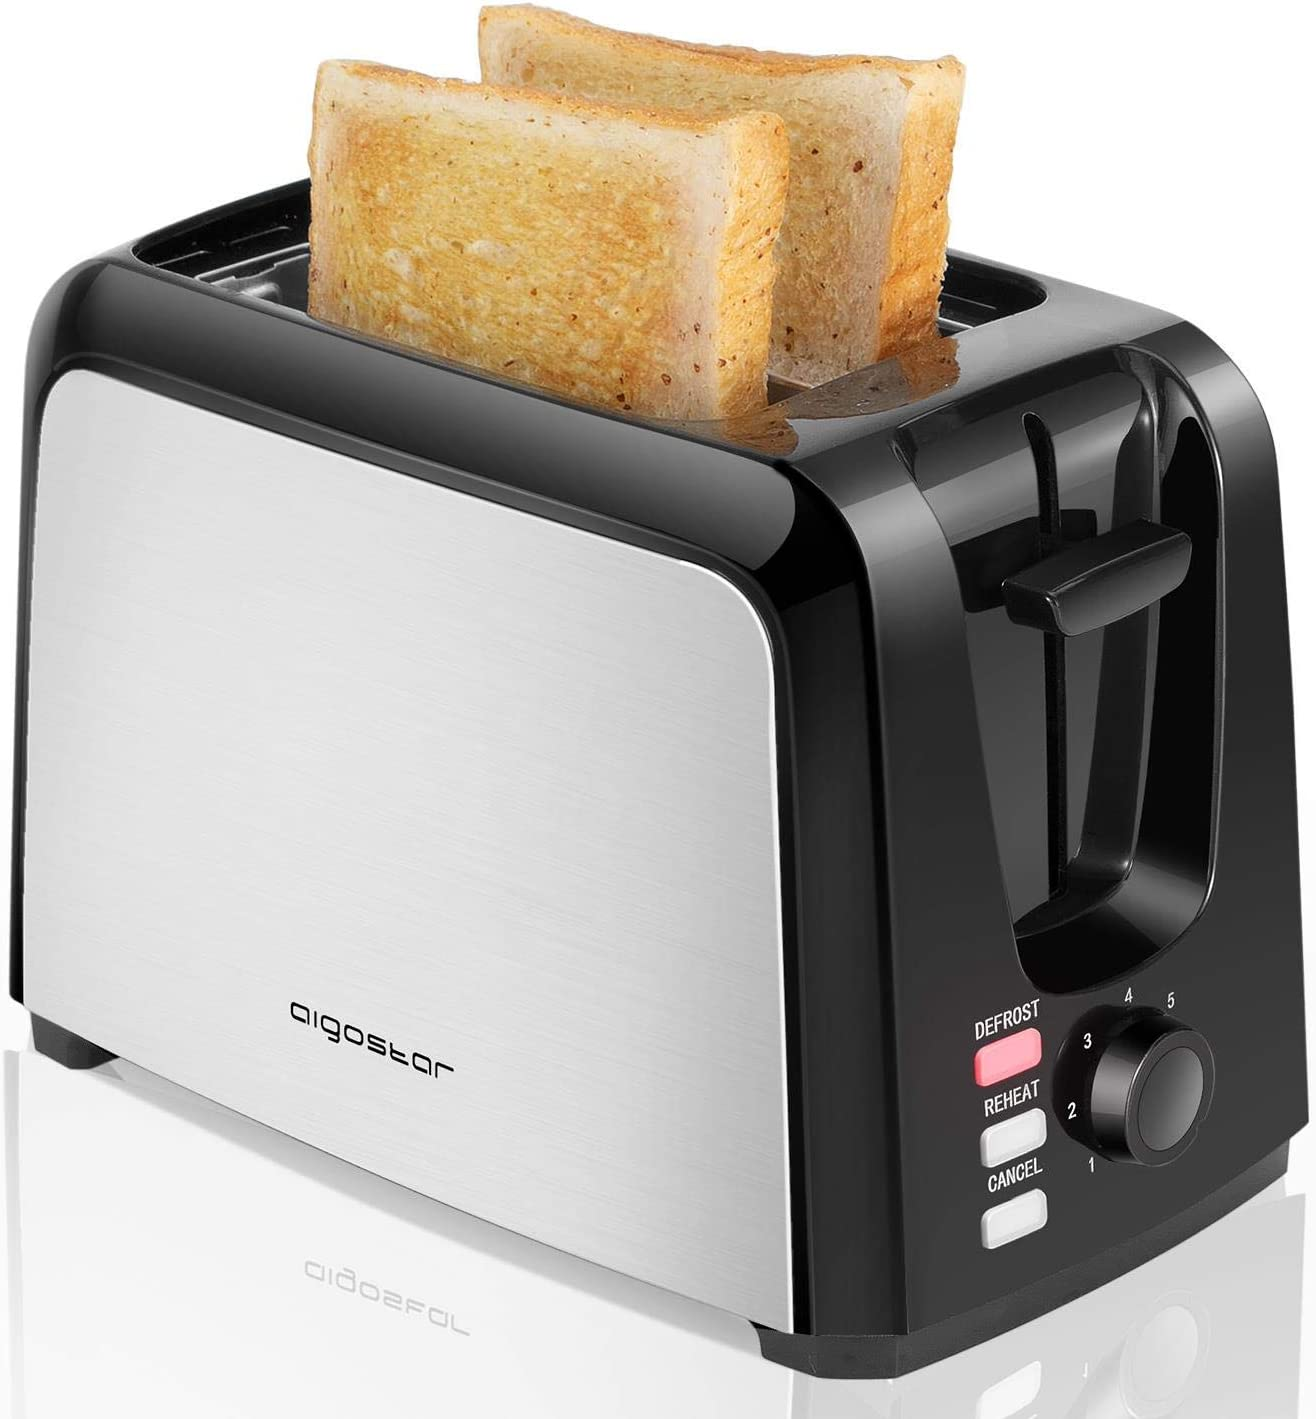 Aigostar Totoro - 2 Slice Toaster, Toasters with 2 Wide Slots, Compact Brushed Stainless Steel Toasters with Pop Up Reheat Defrost Functions, 7-Shade Control & Removable Crumb Tray (Renewed)